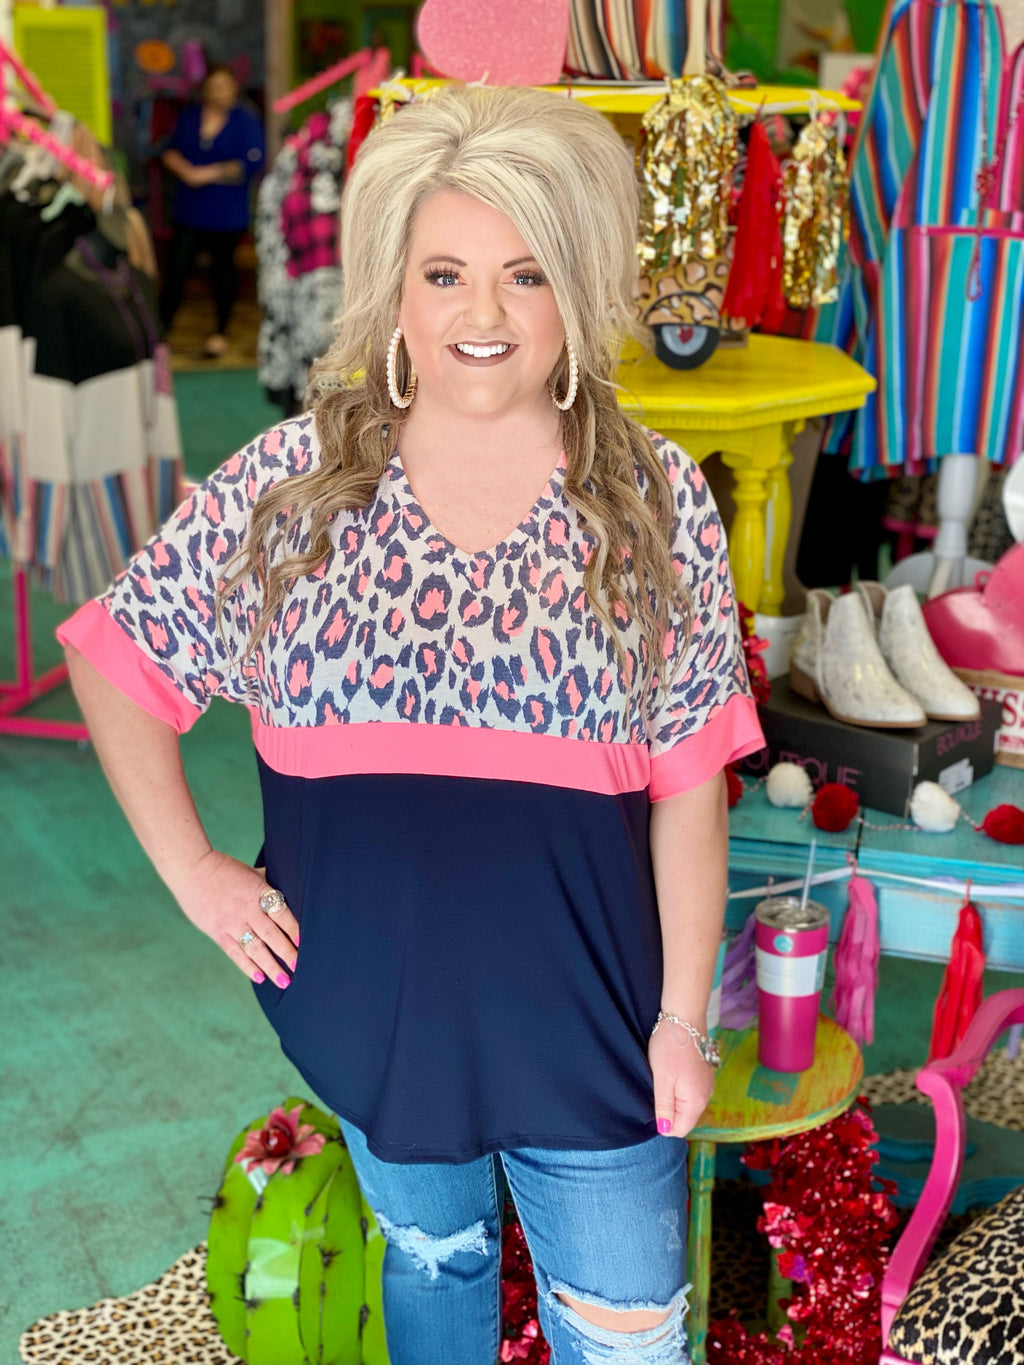 Neon Moves Navy Cheetah Colorblock Top